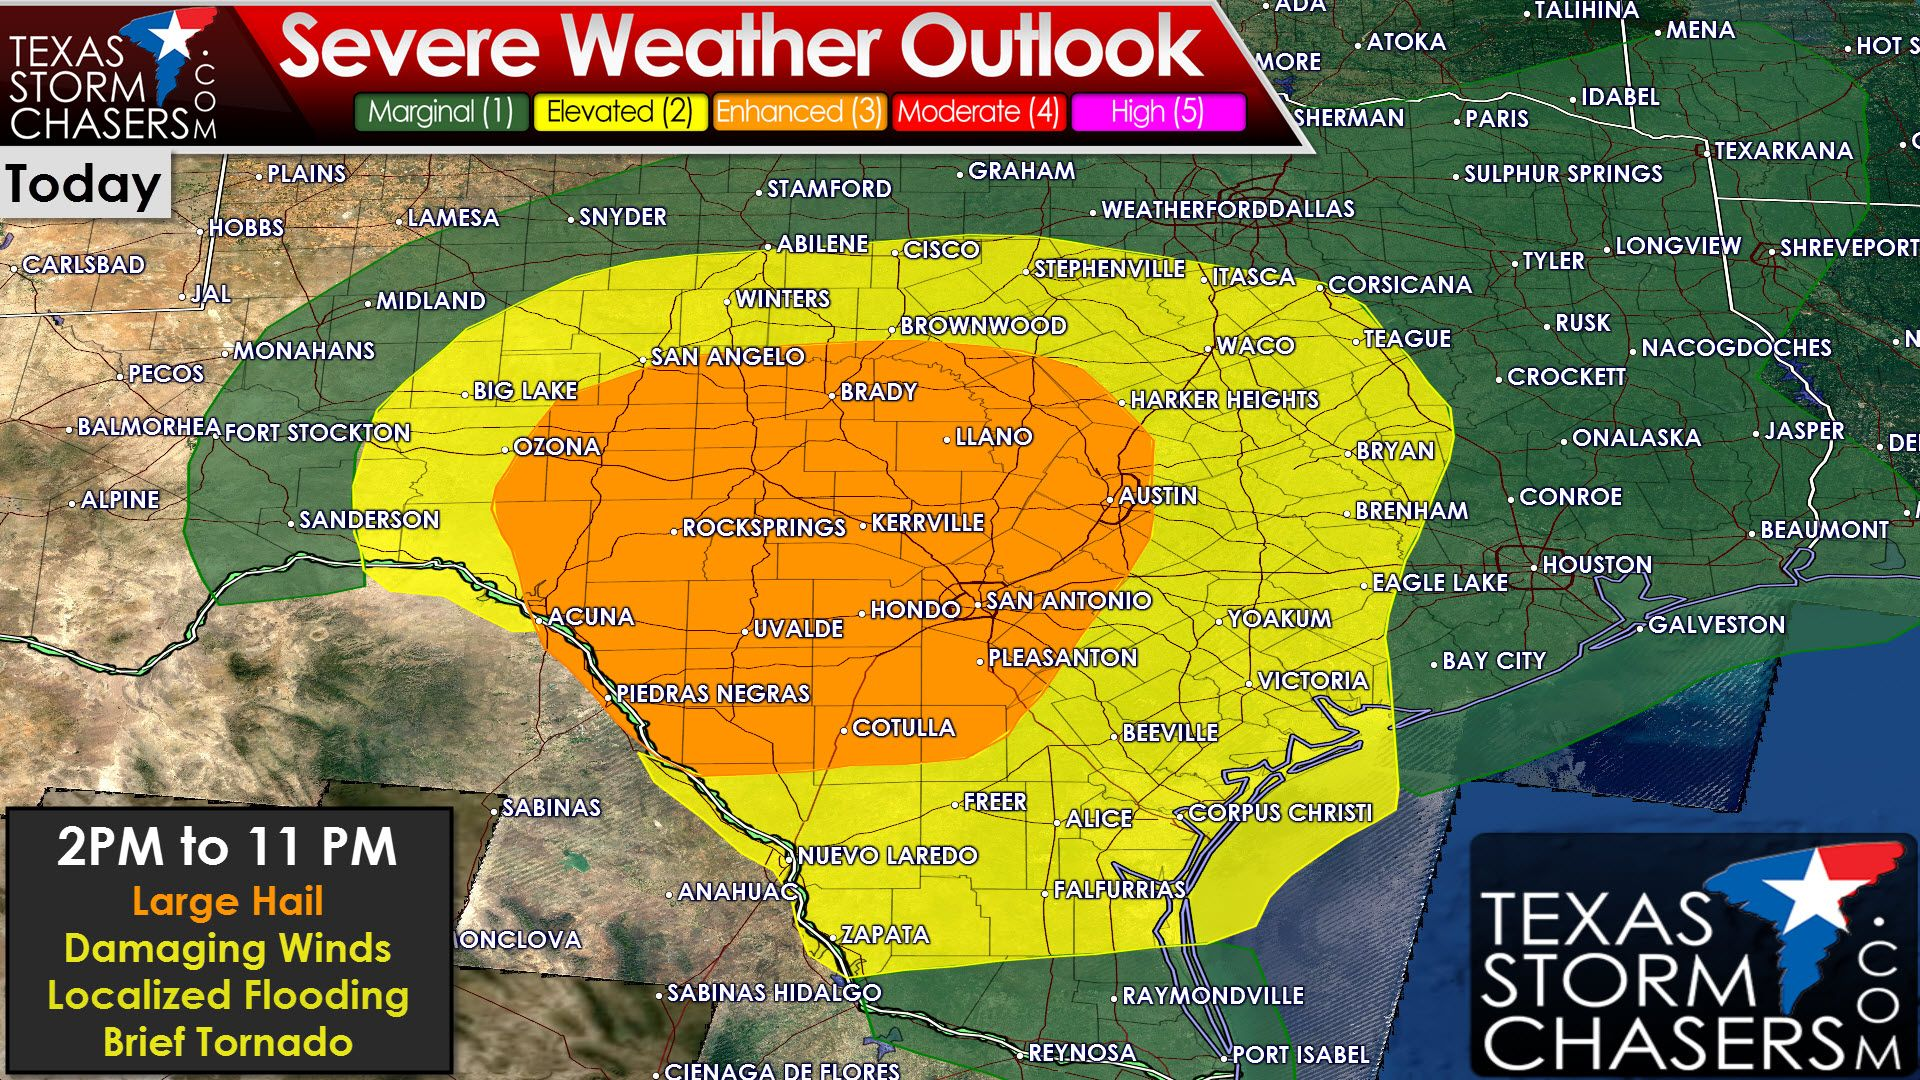 The Storm Prediction Center is indicating the potential for